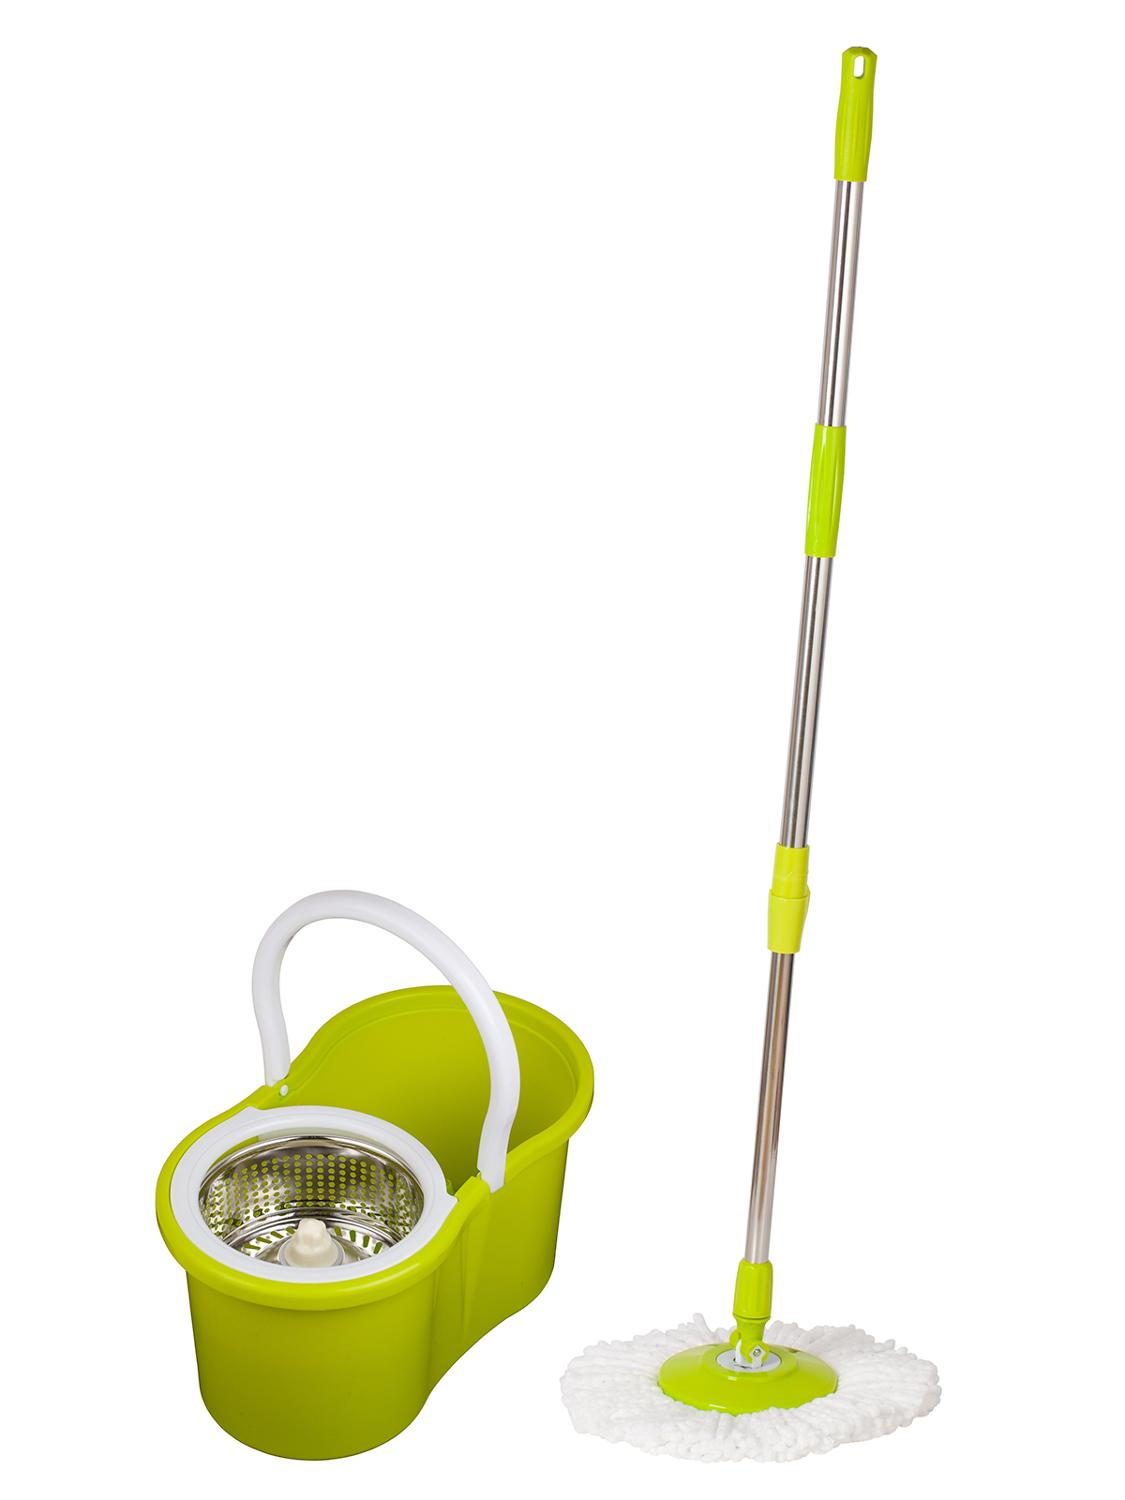 SOKOLTEC Mop Bucket Hand Free Wringing Stainless Steel Mop Self Wet And Cleaning System Dry Cleaning Microfiber Mop Spin Nozzle